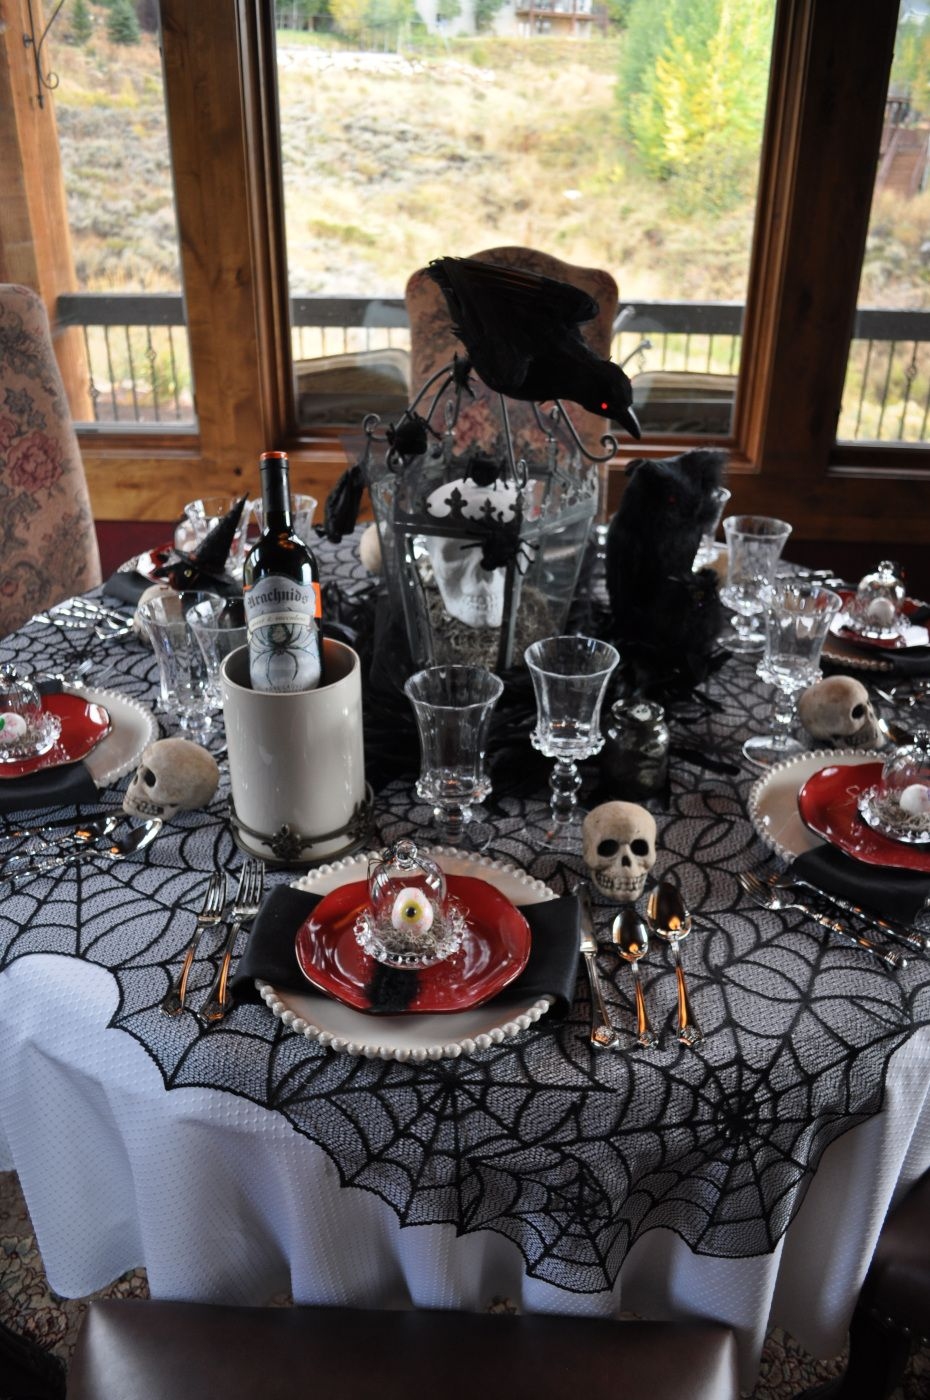 Ordinaire Halloween Table Setting. Love Those Little Cloches With A Spooky Eyeball.